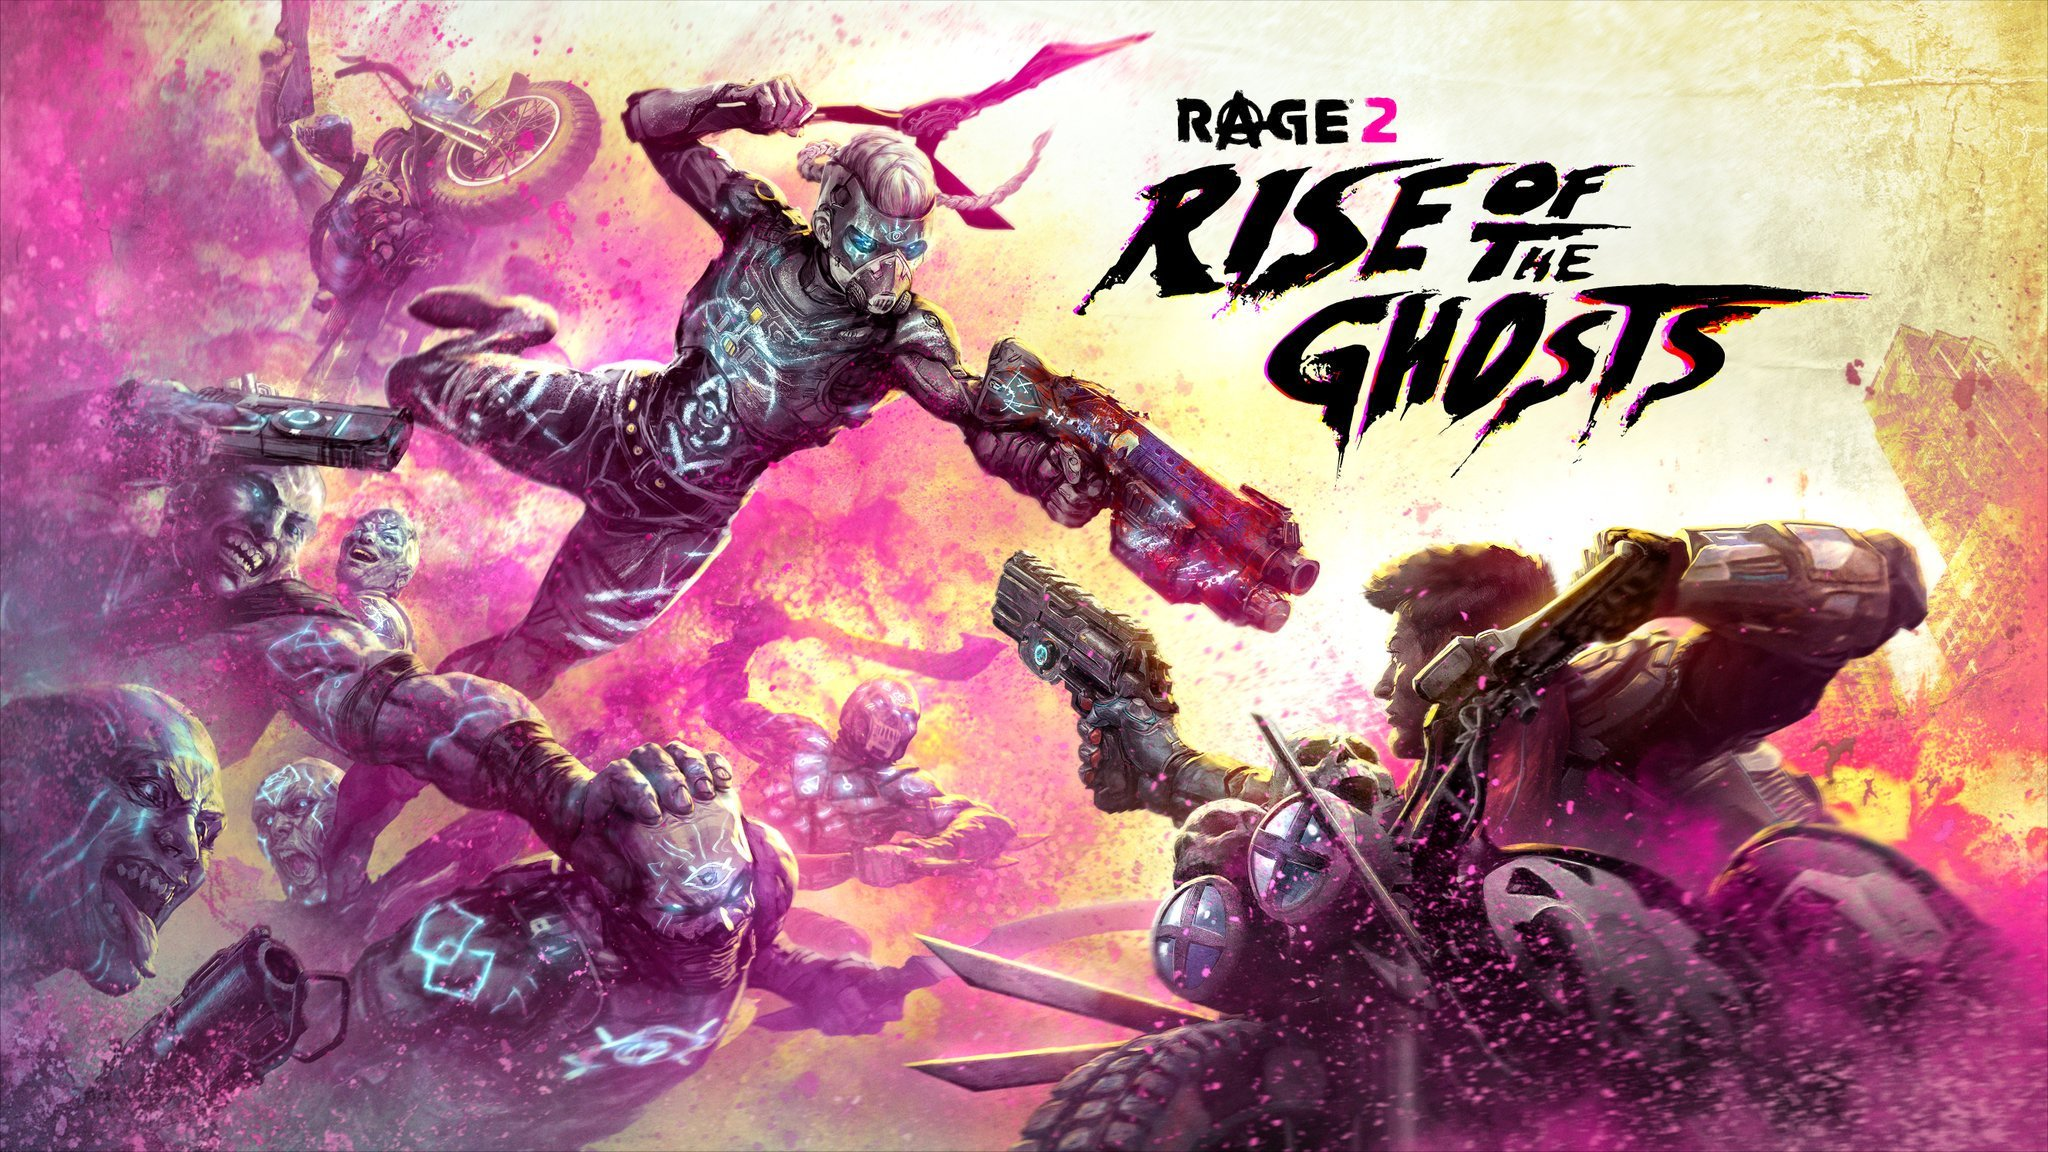 Rage 2 DLC drops September 26